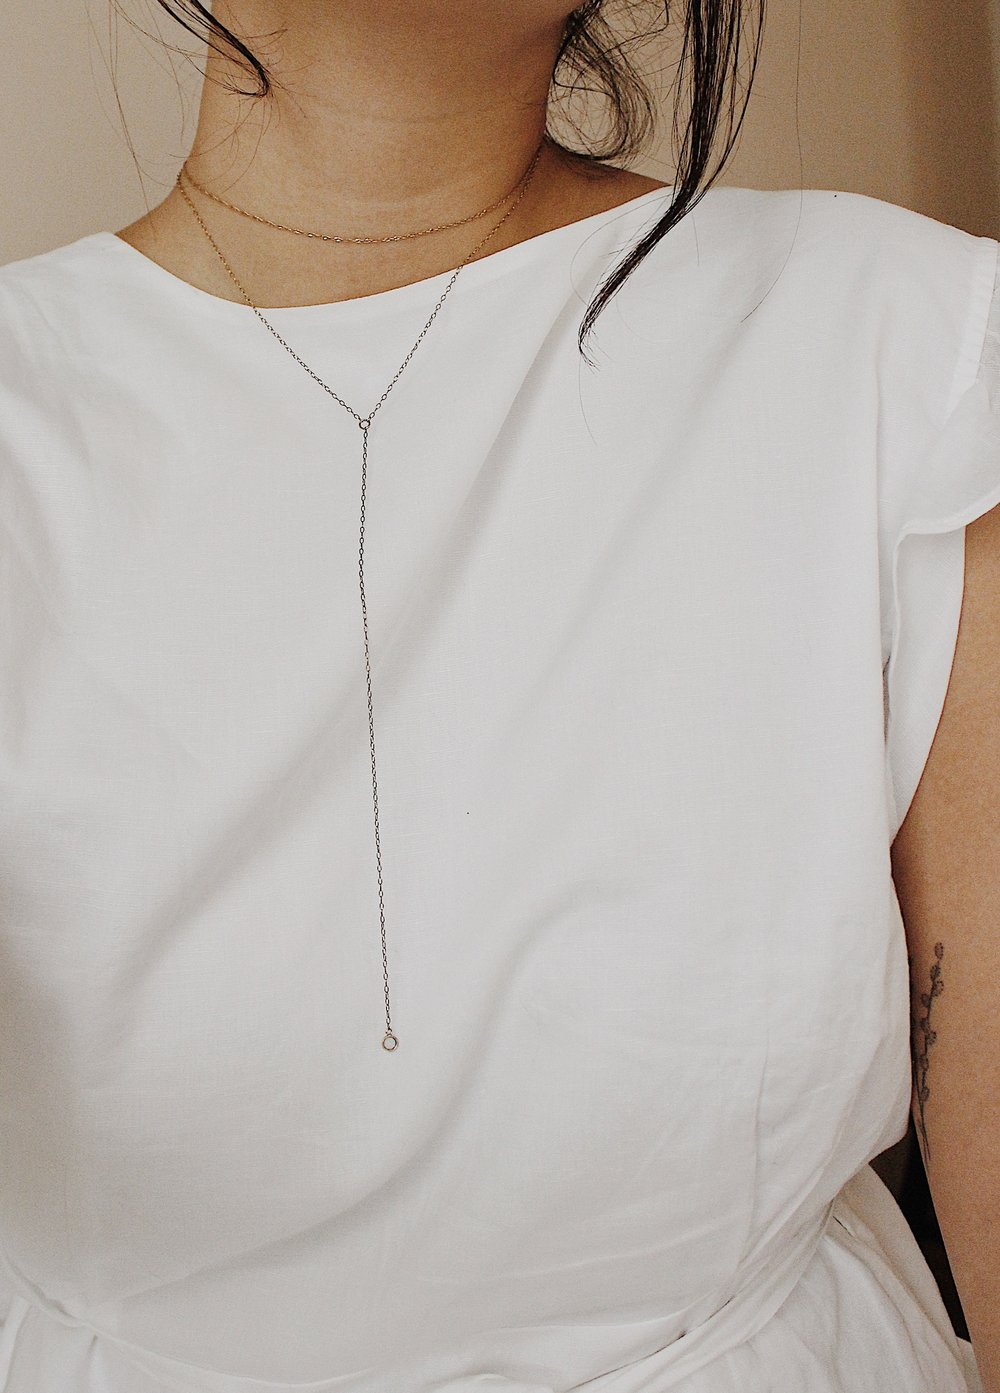 From top to bottom: Catbird  Sweet Nothing Choker  //  One Six Five  Drop Chain Necklace (unavailable but similar option  here )